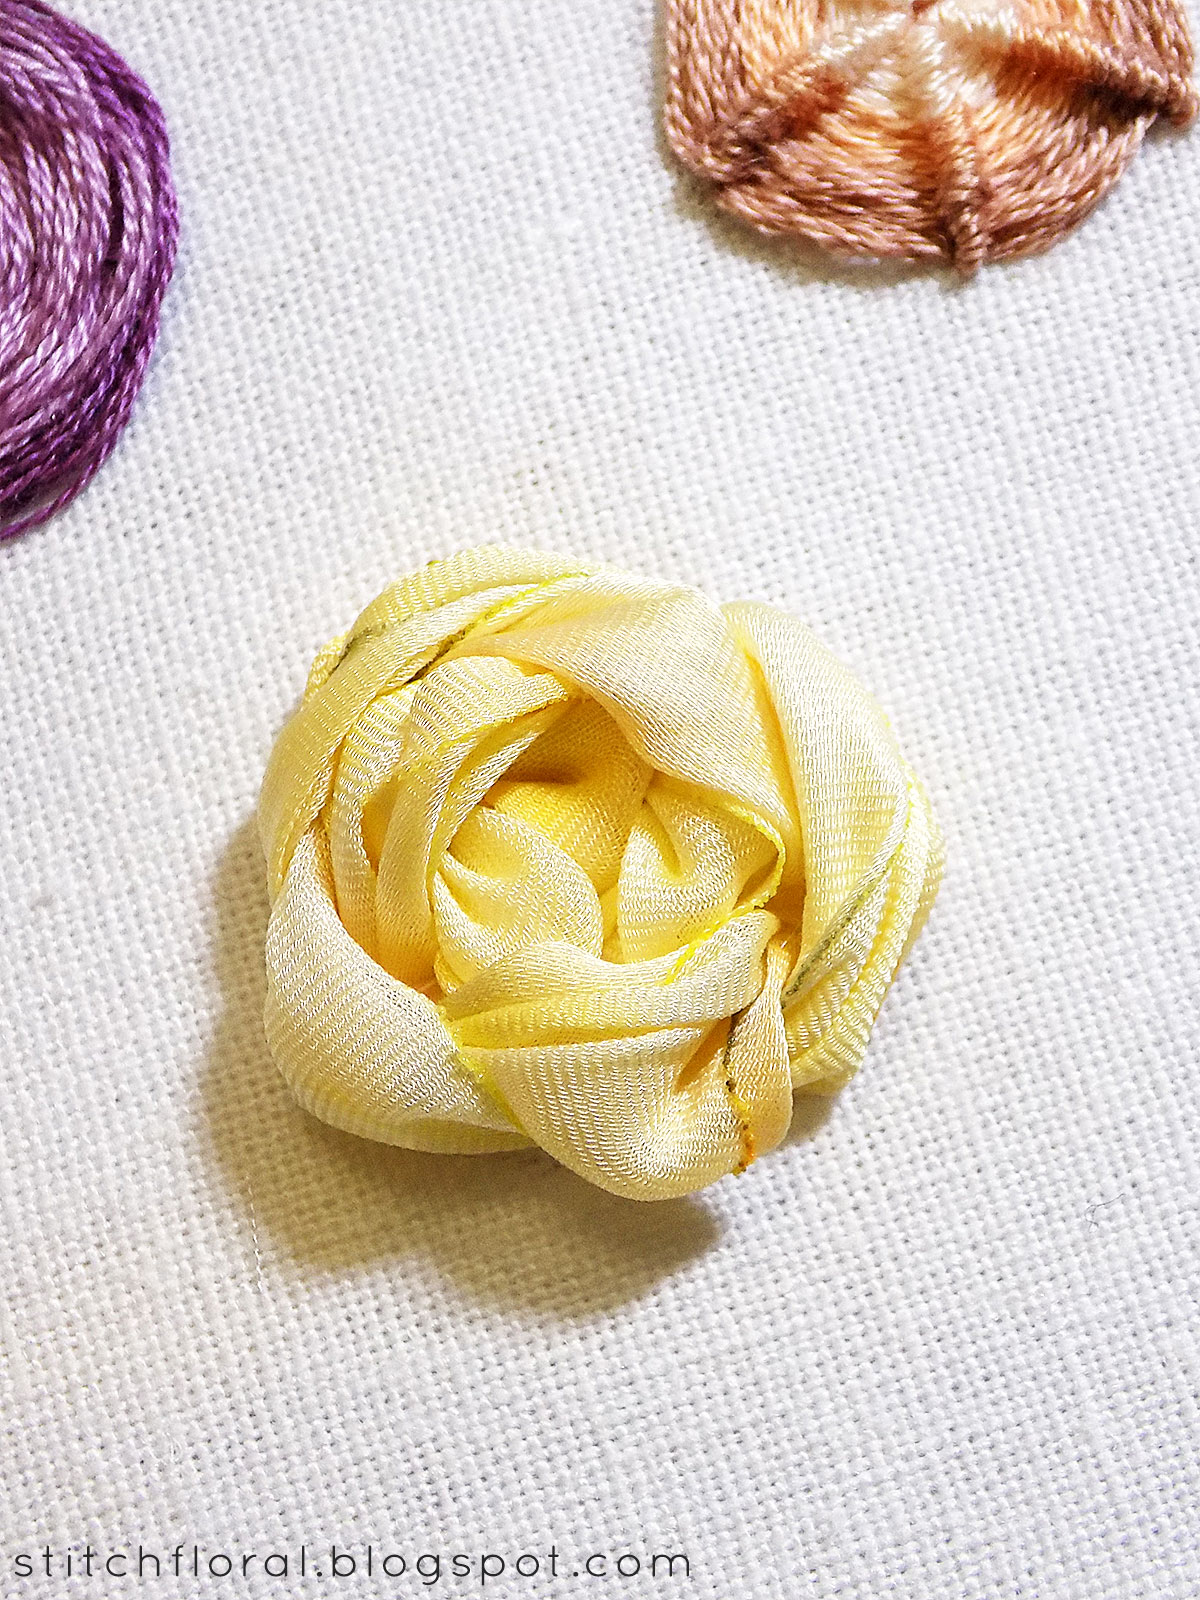 Spider web stitch tutorial - Stitch Floral